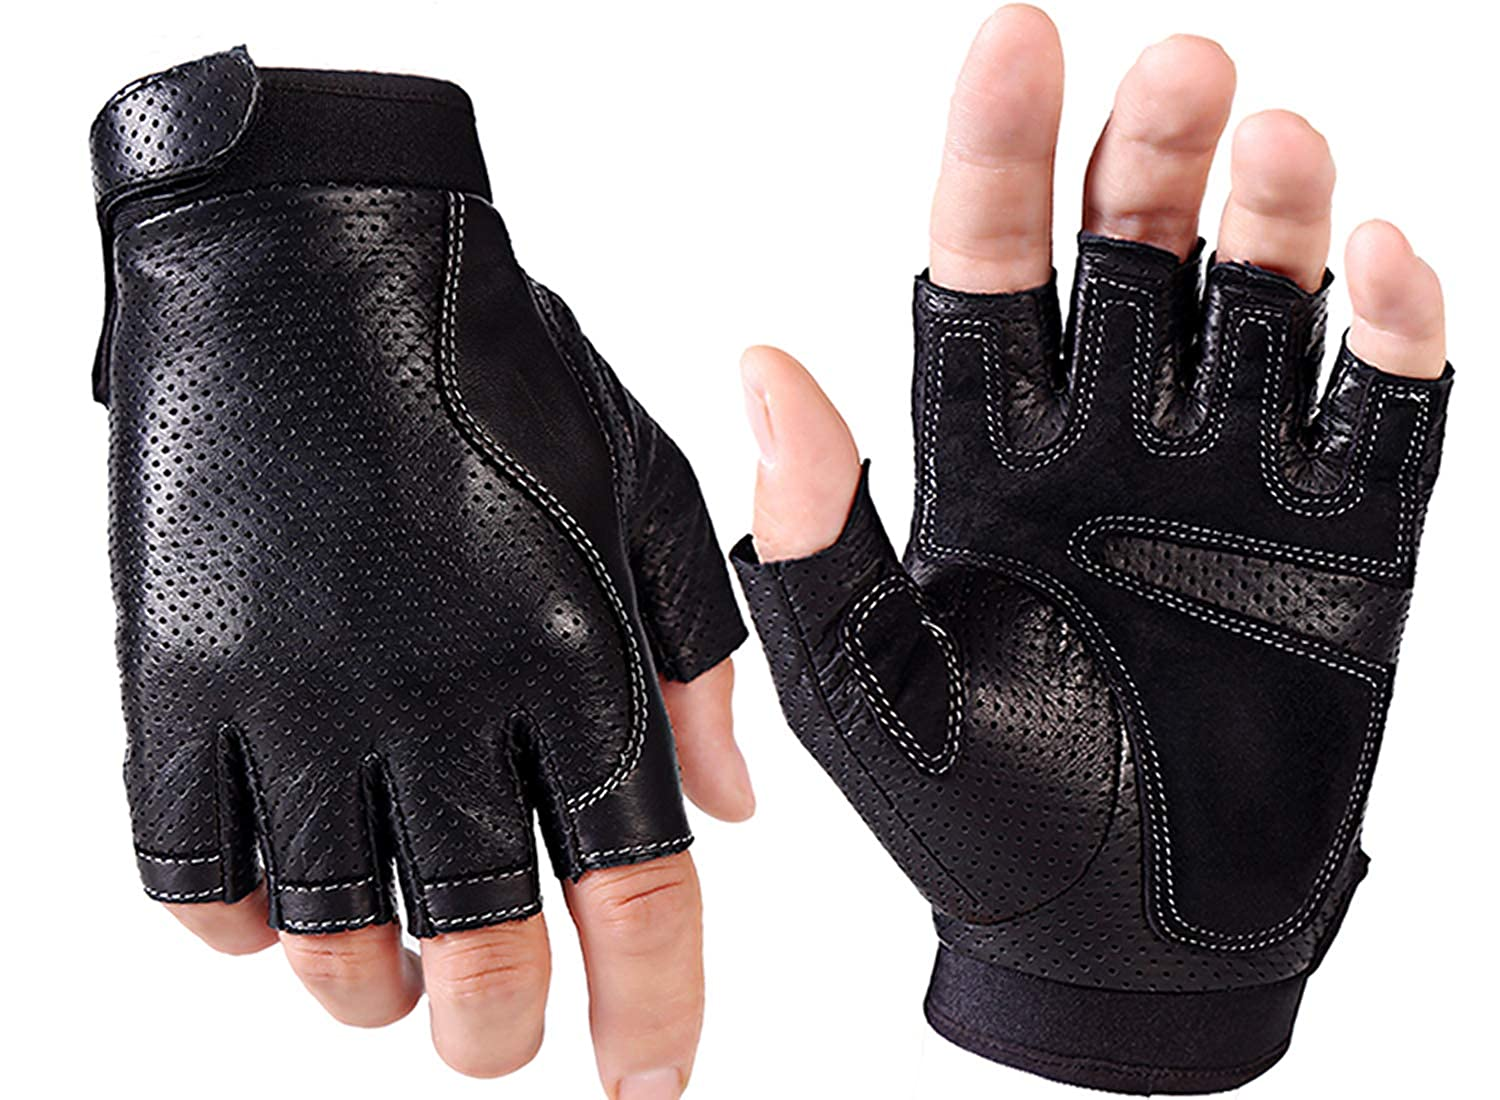 New Men Black Fashion Everyday Cycling Bike Driving Party Leather Quality Gloves